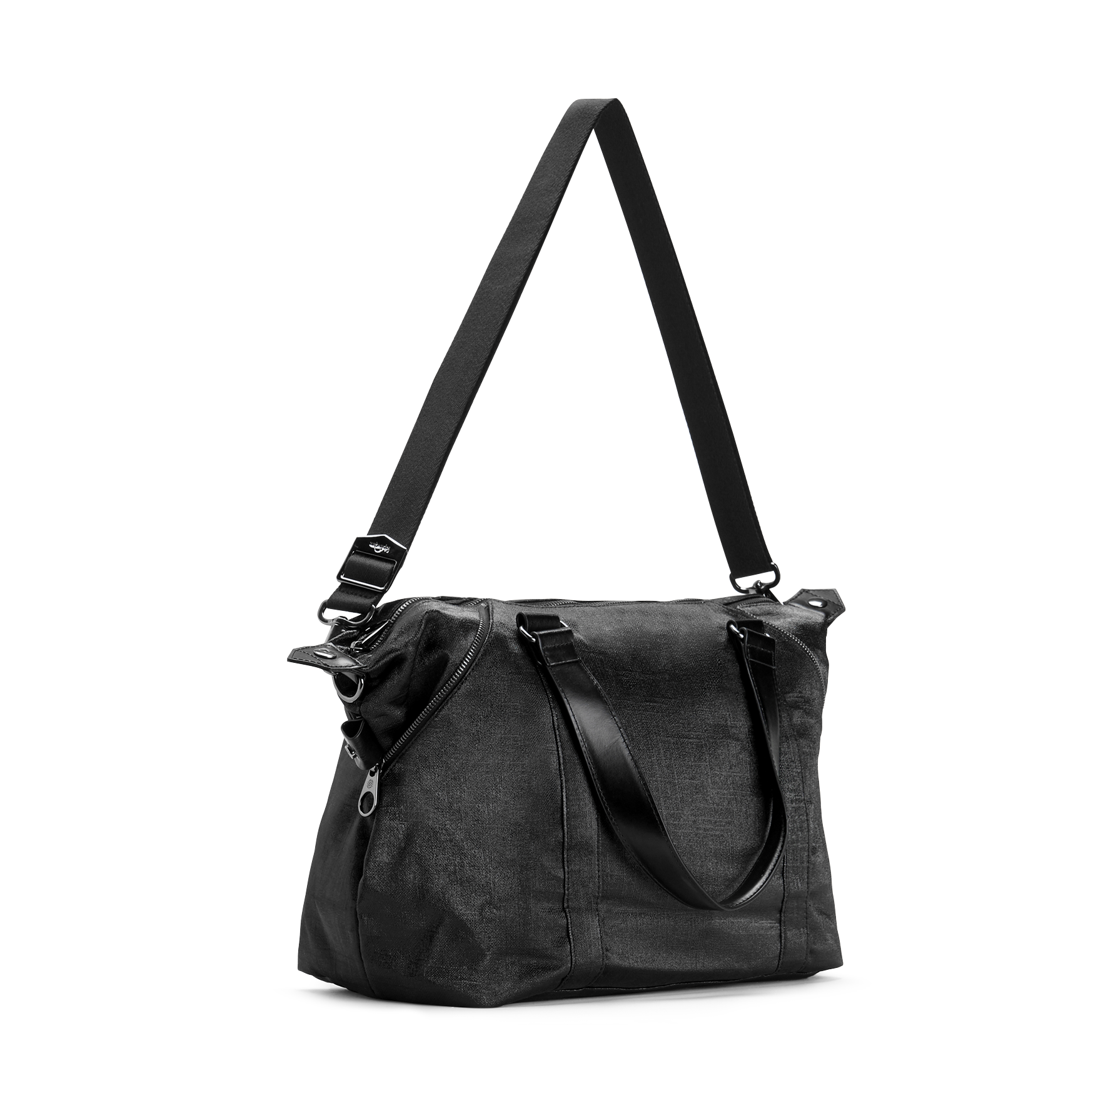 RT ORGANISED Coated Black - Tote with removable pouches - £214